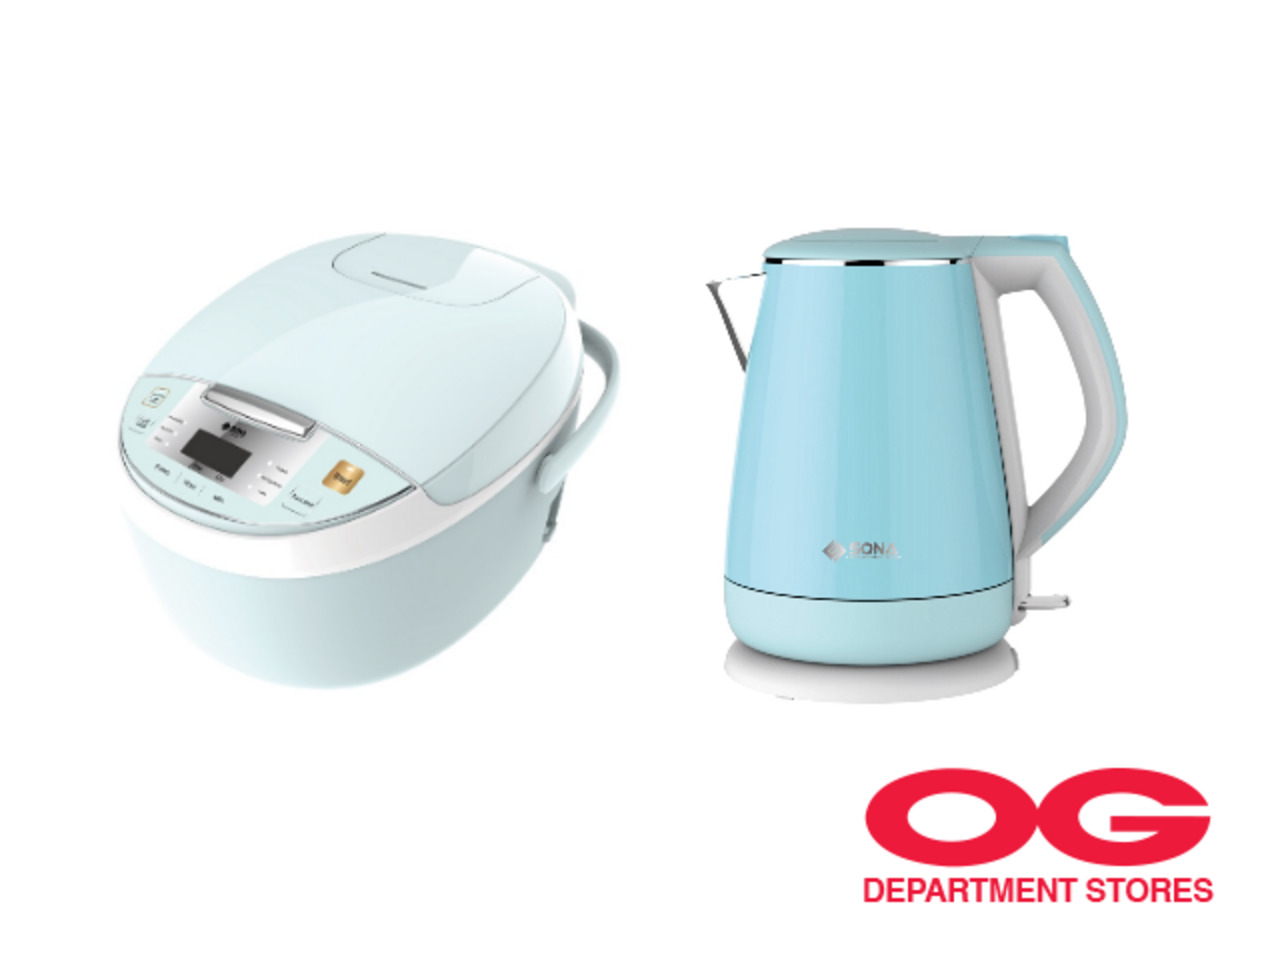 SONA 1L Digital Rice Cooker + 1.5L Double Layer Kettle Jug @ $100 Off